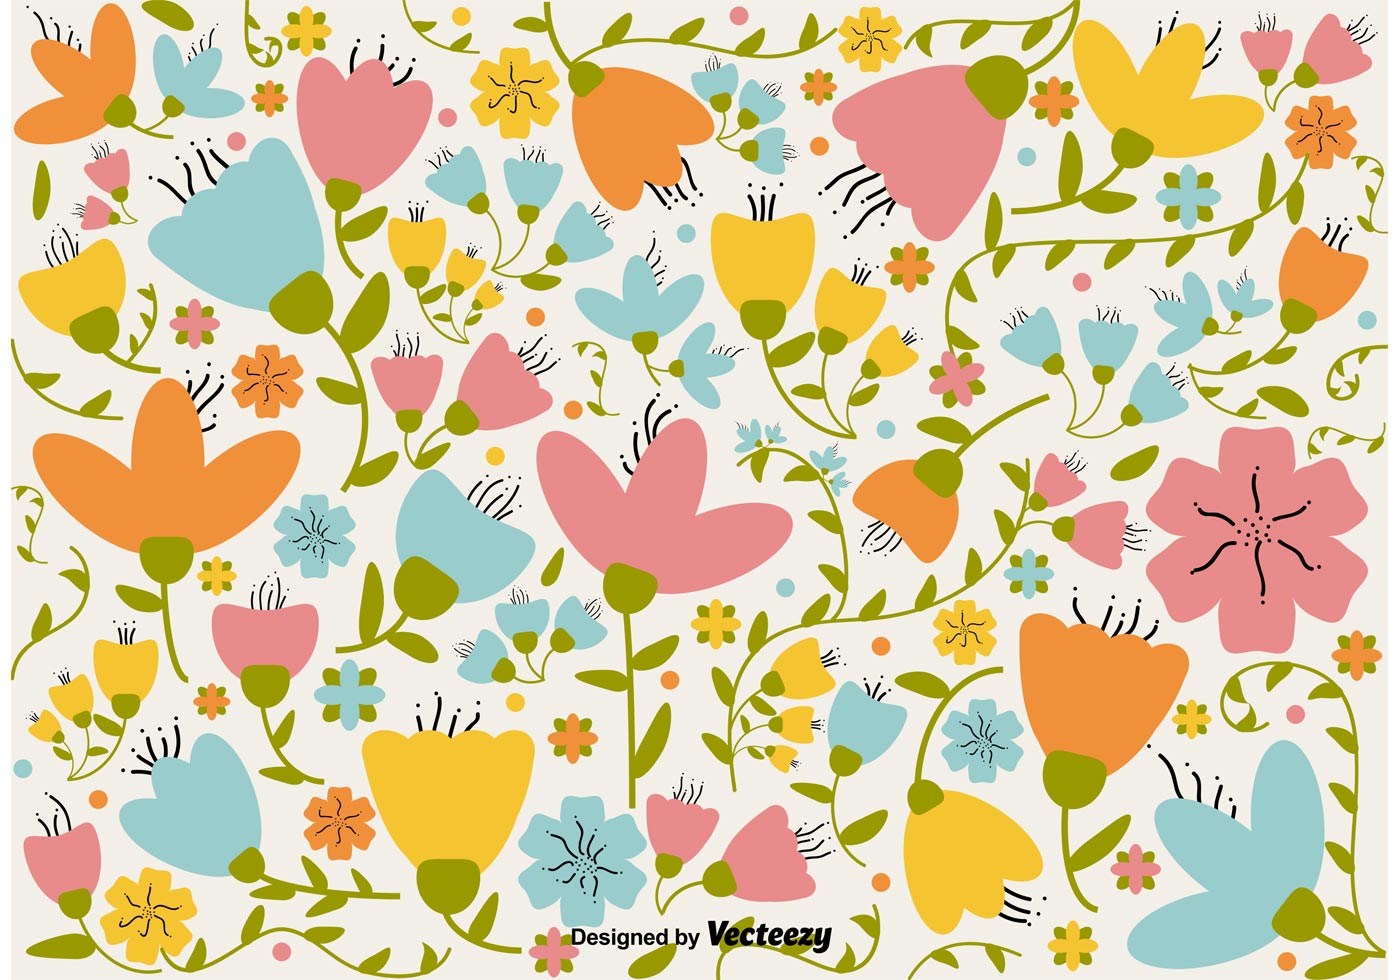 Floral retro background download free vector art stock graphics images - Floral background ...